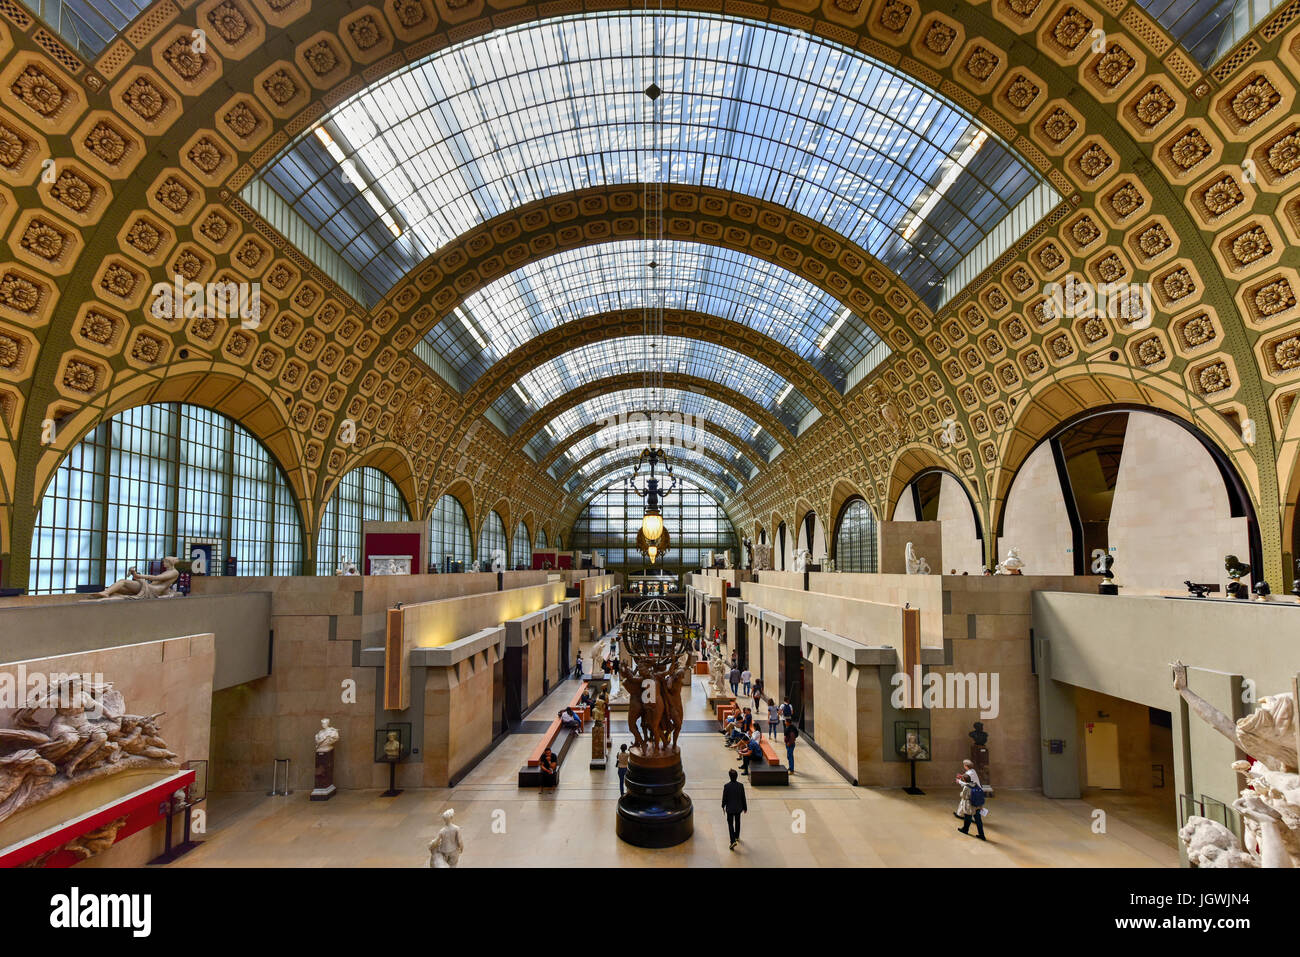 Paris, France - May 16, 2017: TheMusee d'Orsay, a museum in Paris, France. It is housed in the formerGare - Stock Image